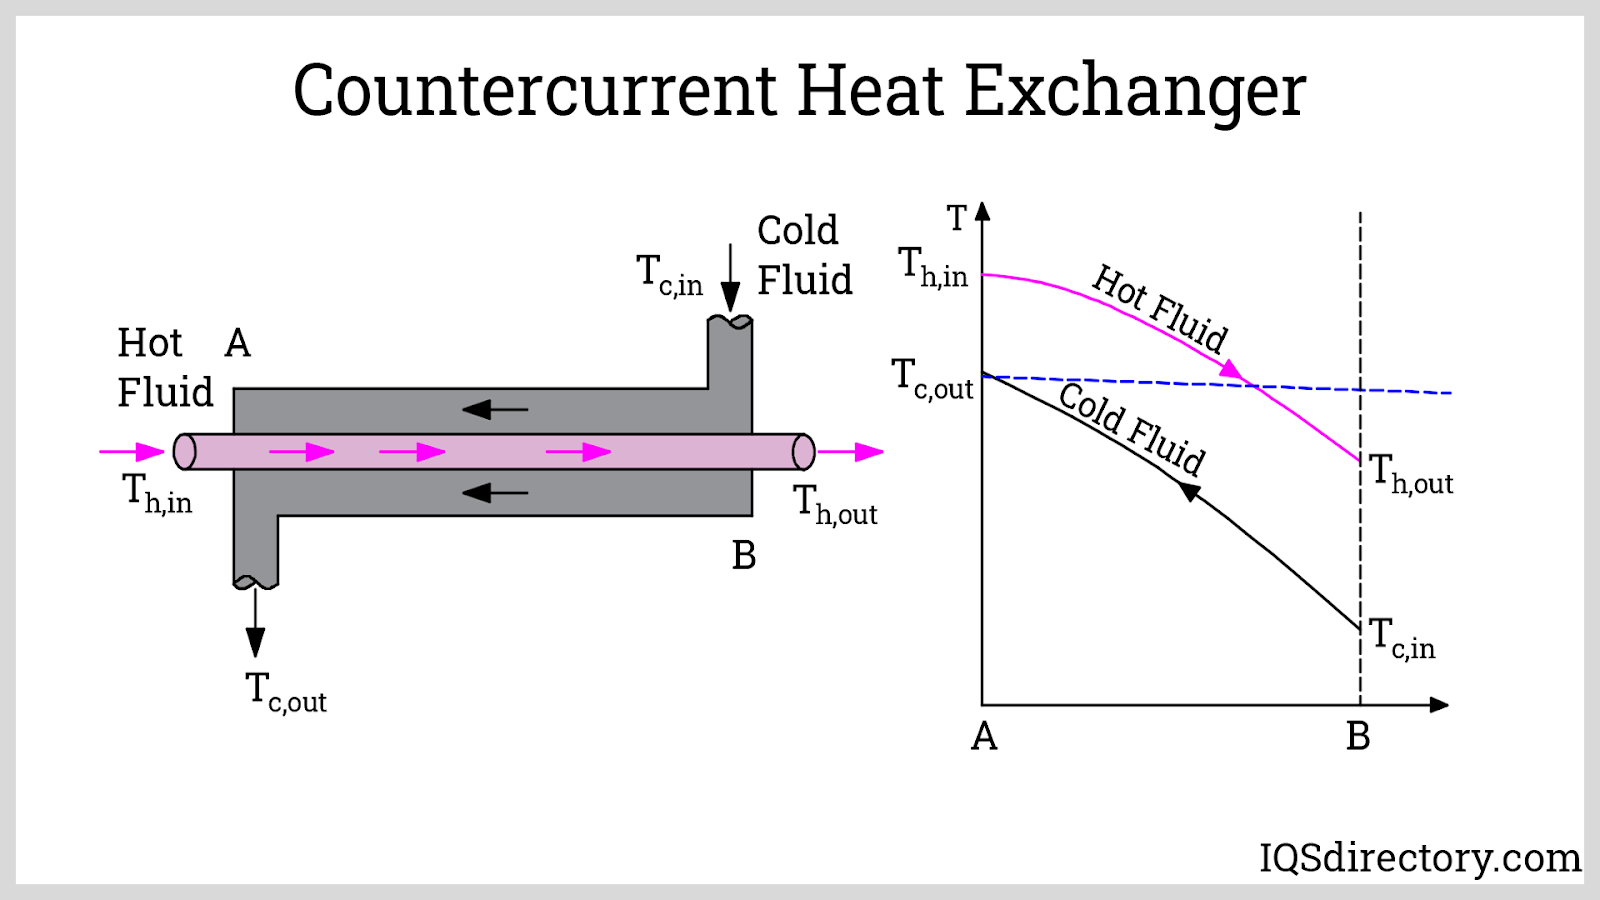 Countercurrent Heat Exchanger